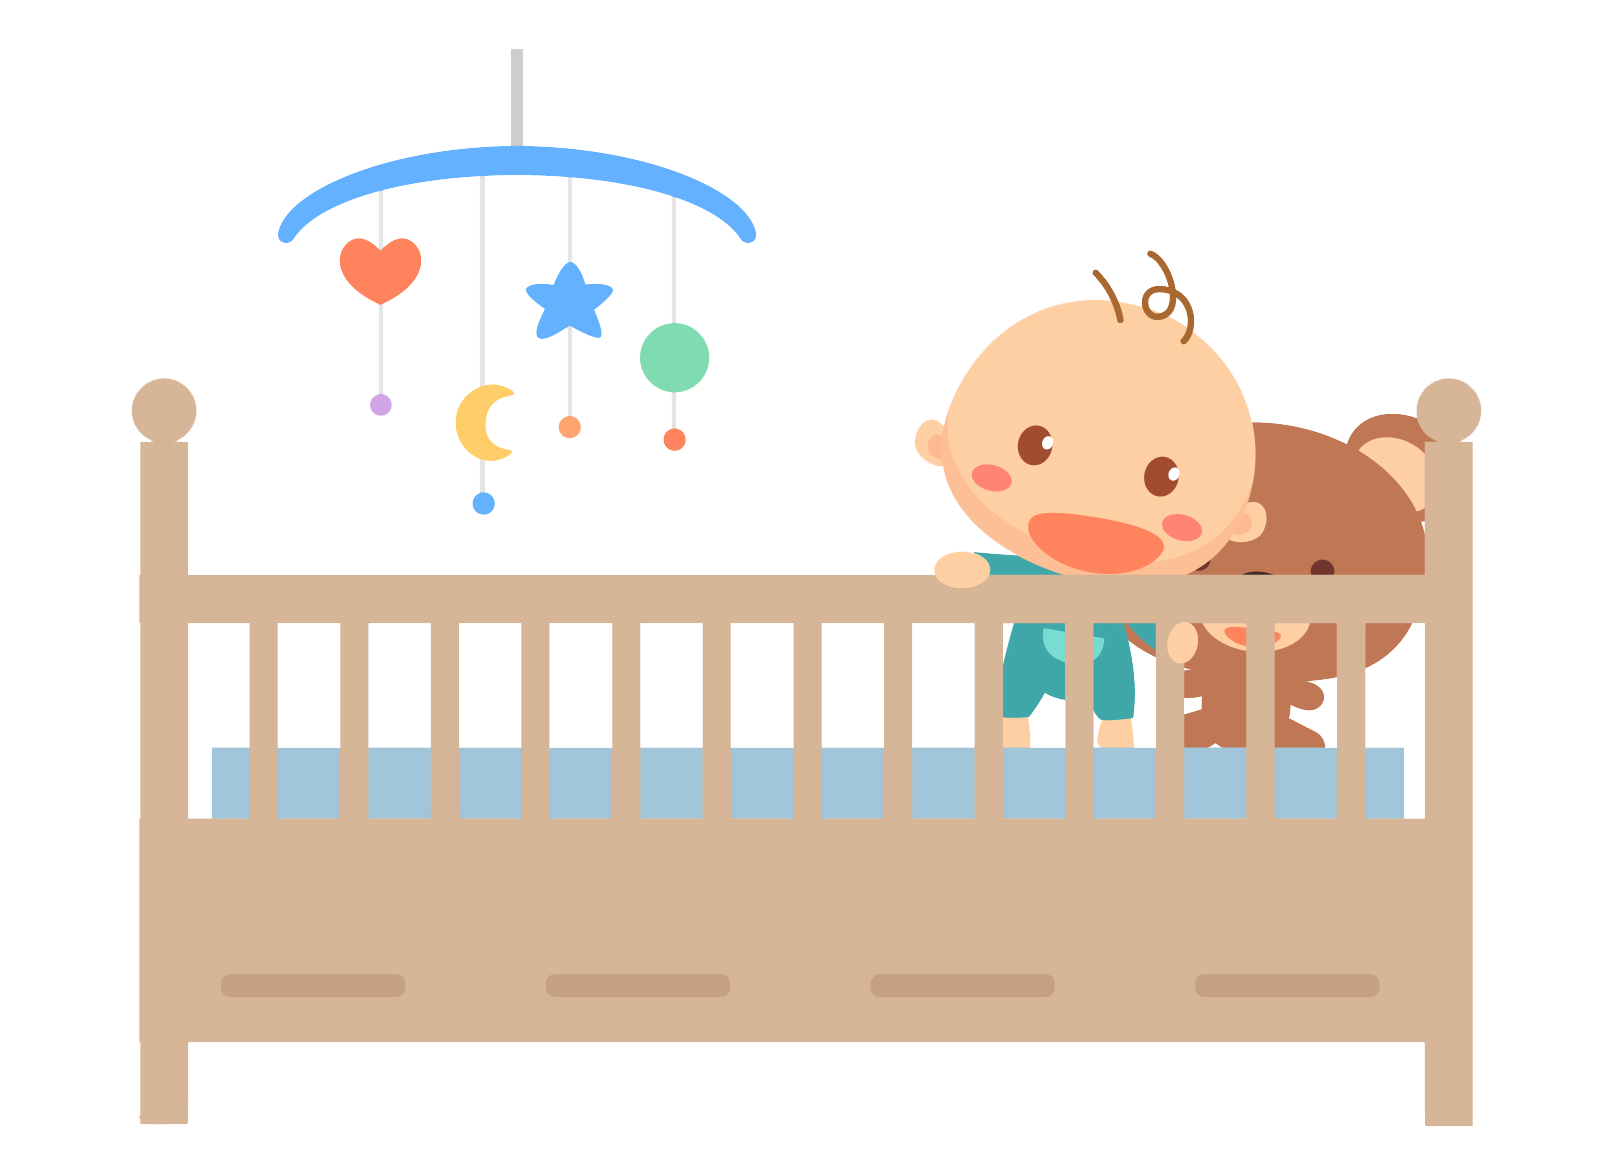 Crib clipart baby bed, Crib baby bed Transparent FREE for.